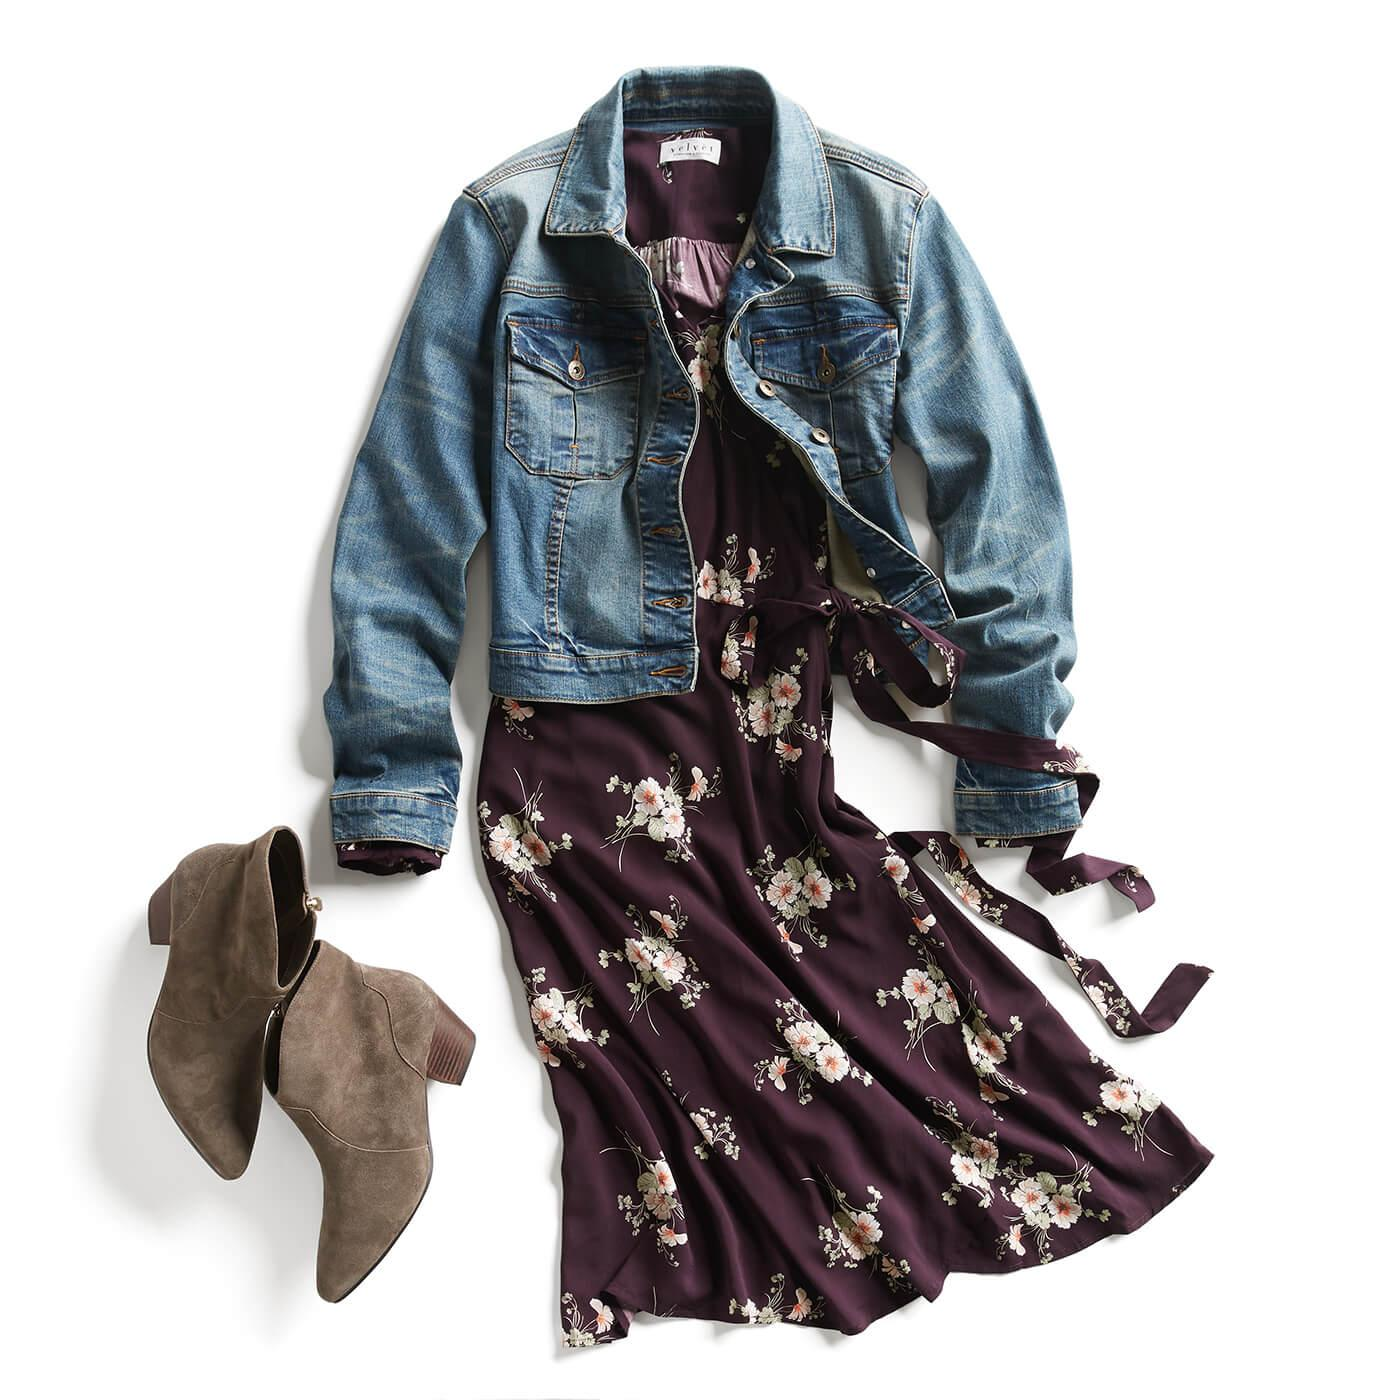 Description: oversized denim jacket with dress